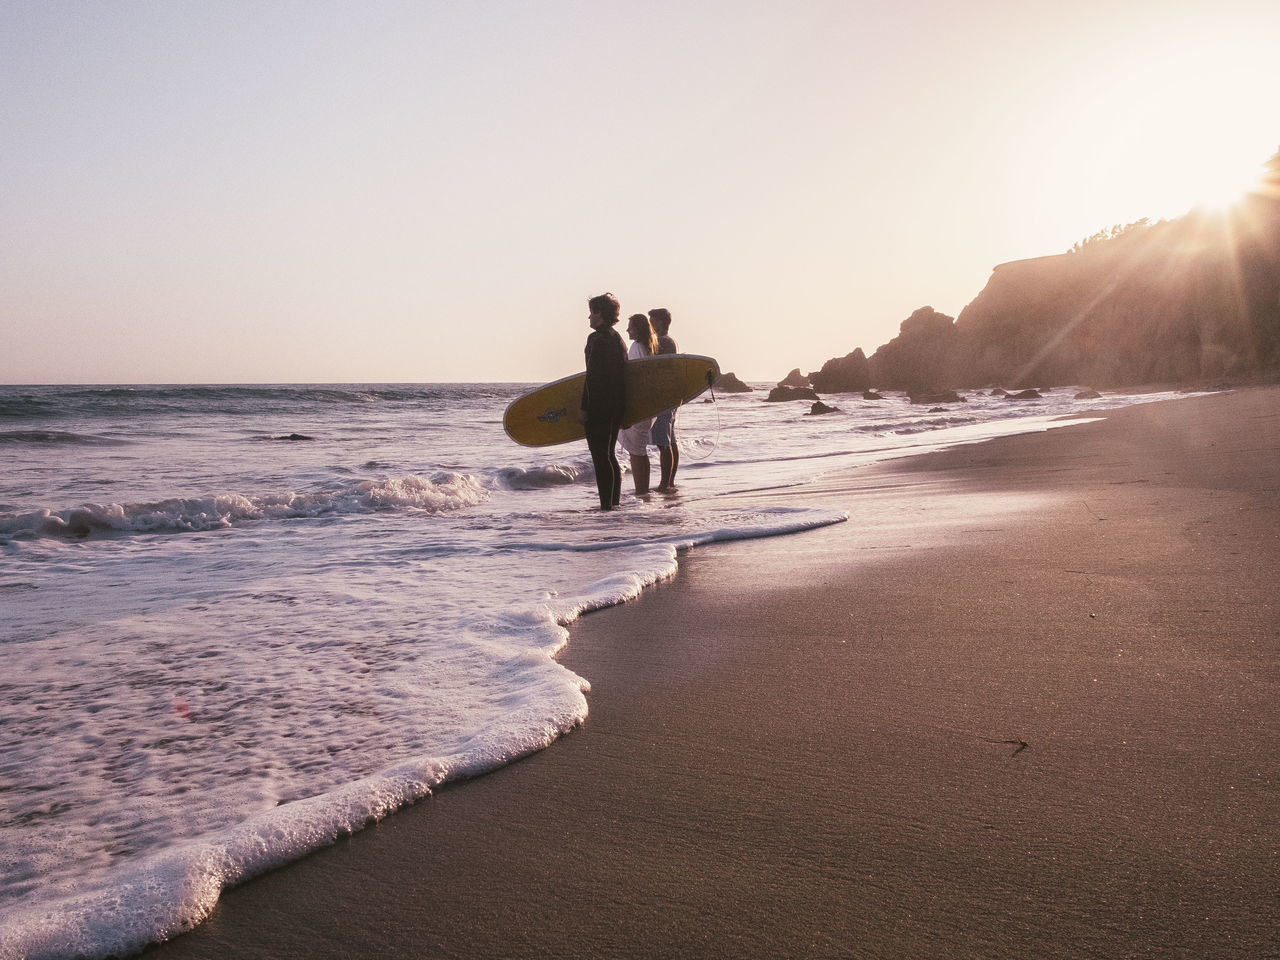 sea, beach, real people, nature, shore, sunset, scenics, water, beauty in nature, full length, lifestyles, leisure activity, outdoors, men, sand, vacations, walking, wave, clear sky, sky, silhouette, standing, horizon over water, day, young adult, people